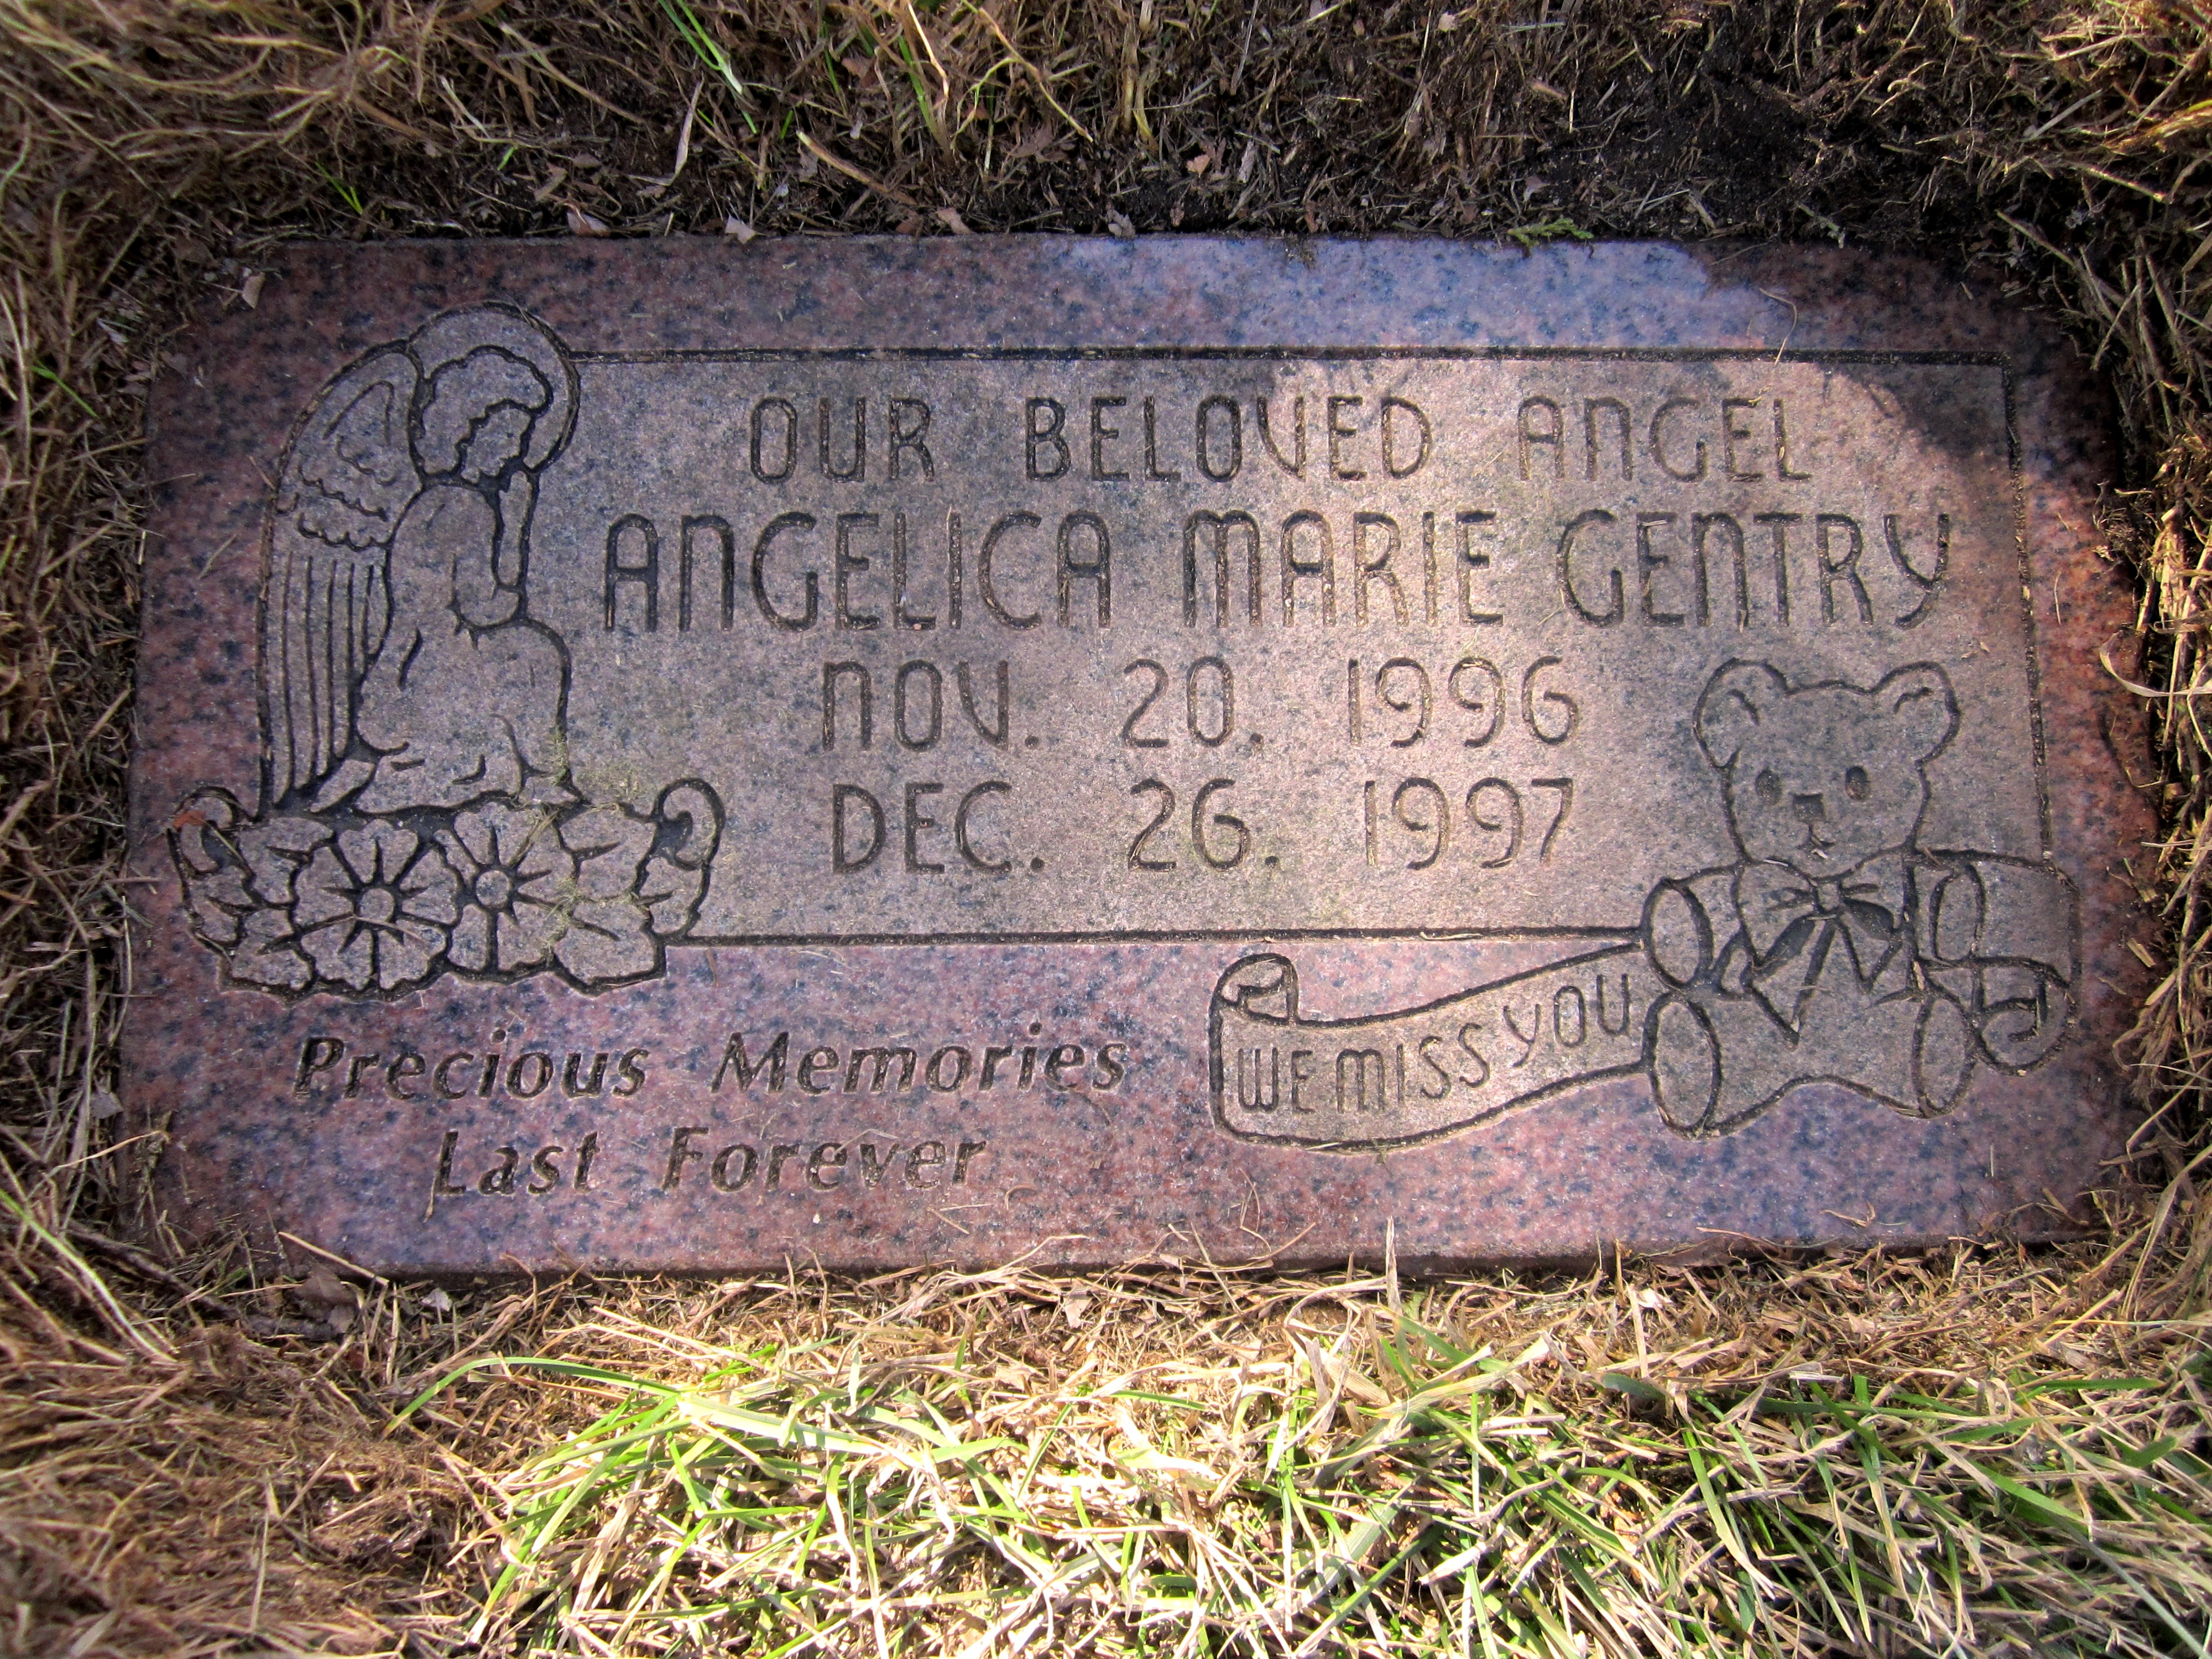 Angelica Marie Gentry